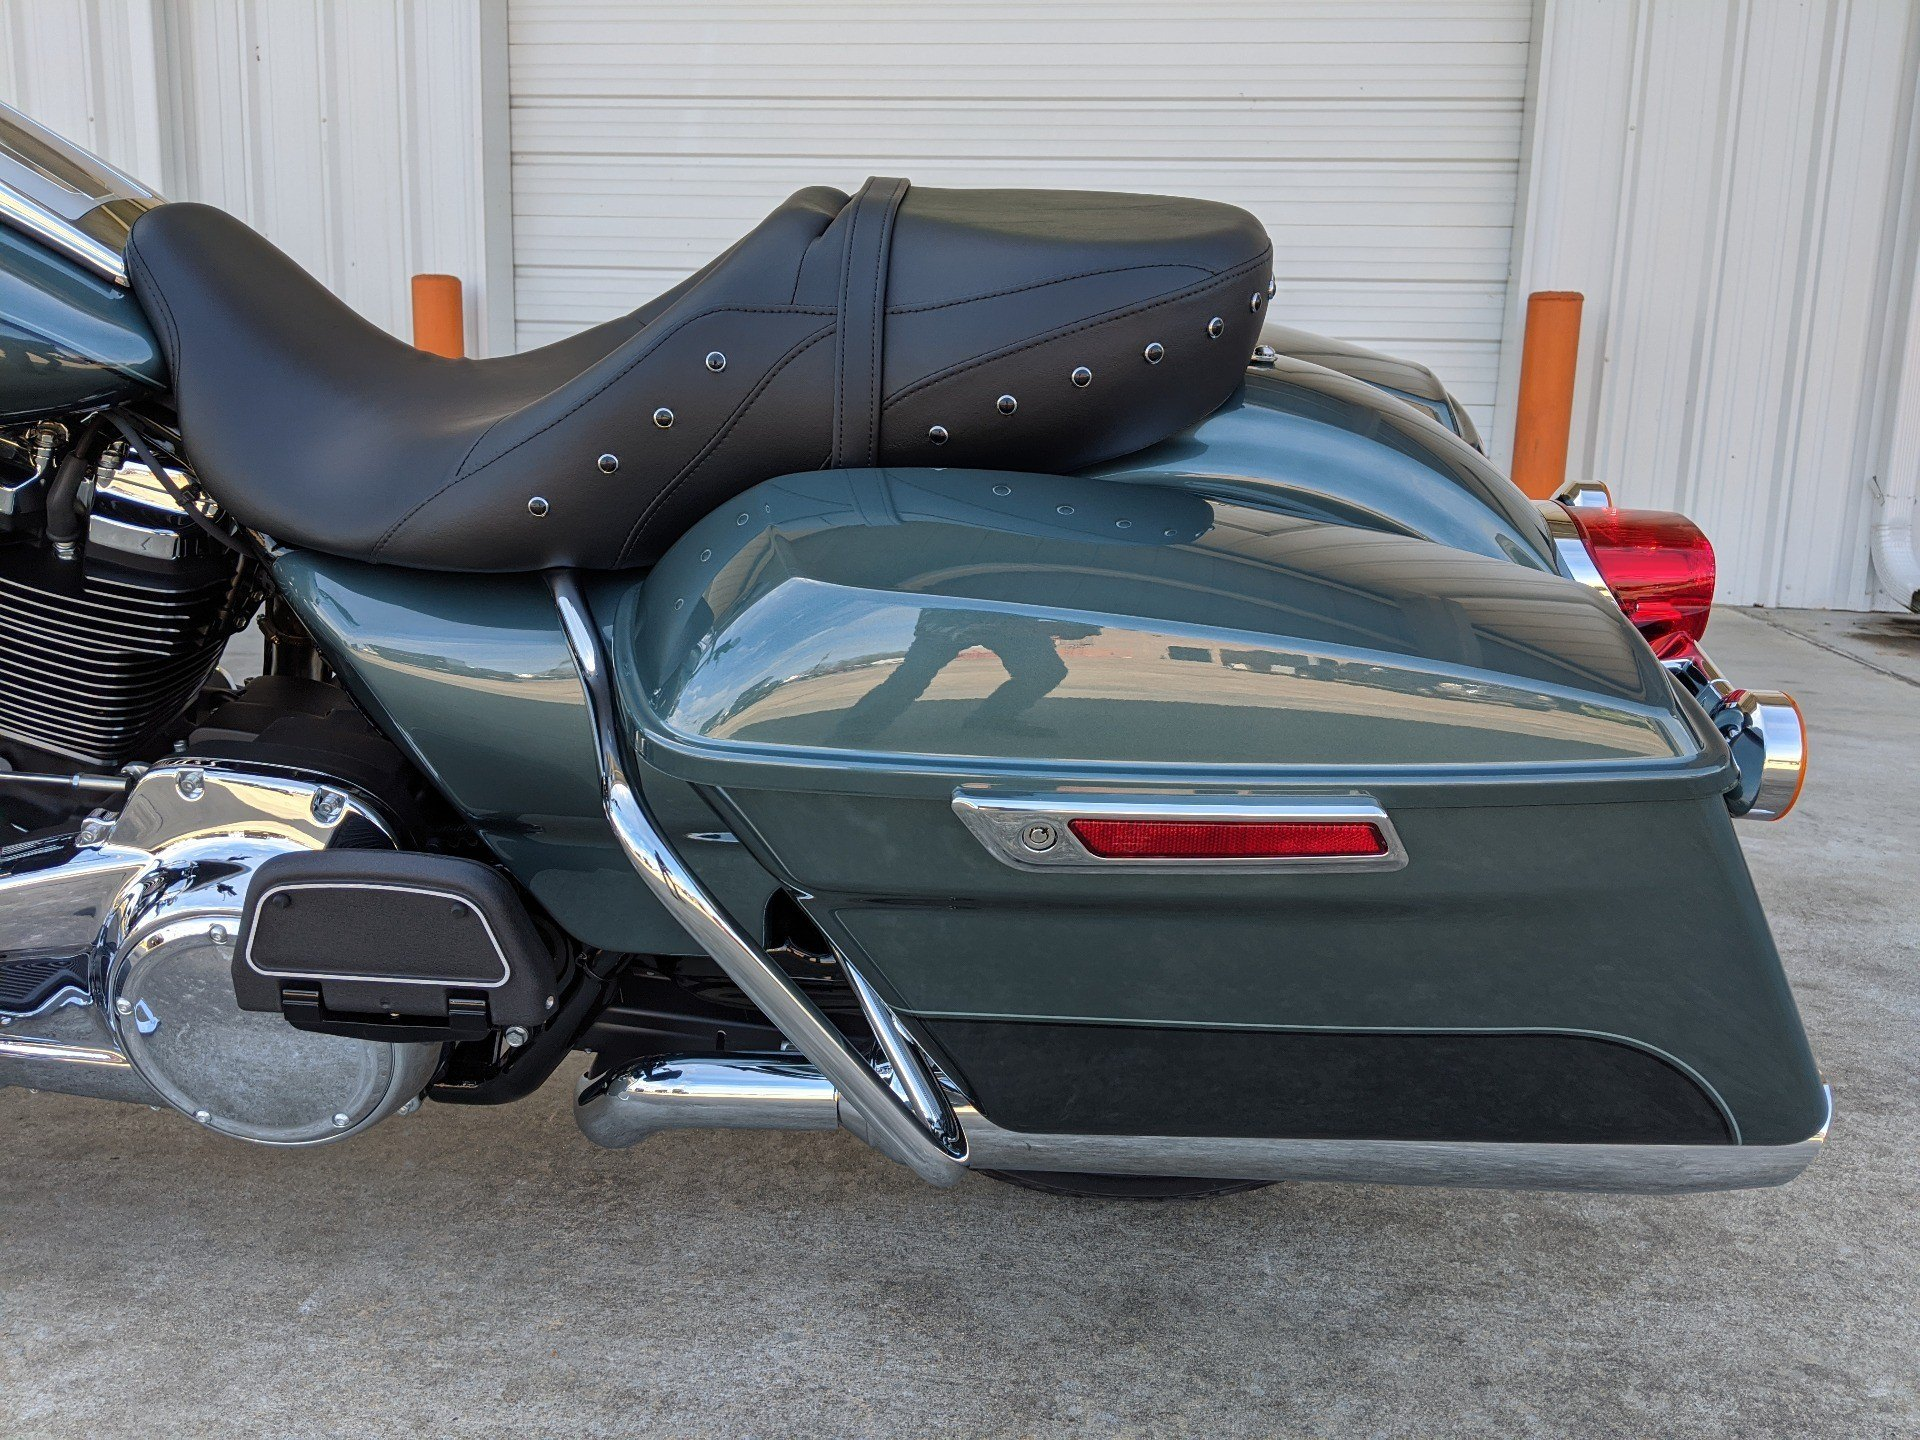 2020 Harley-Davidson Road King® in Monroe, Louisiana - Photo 8